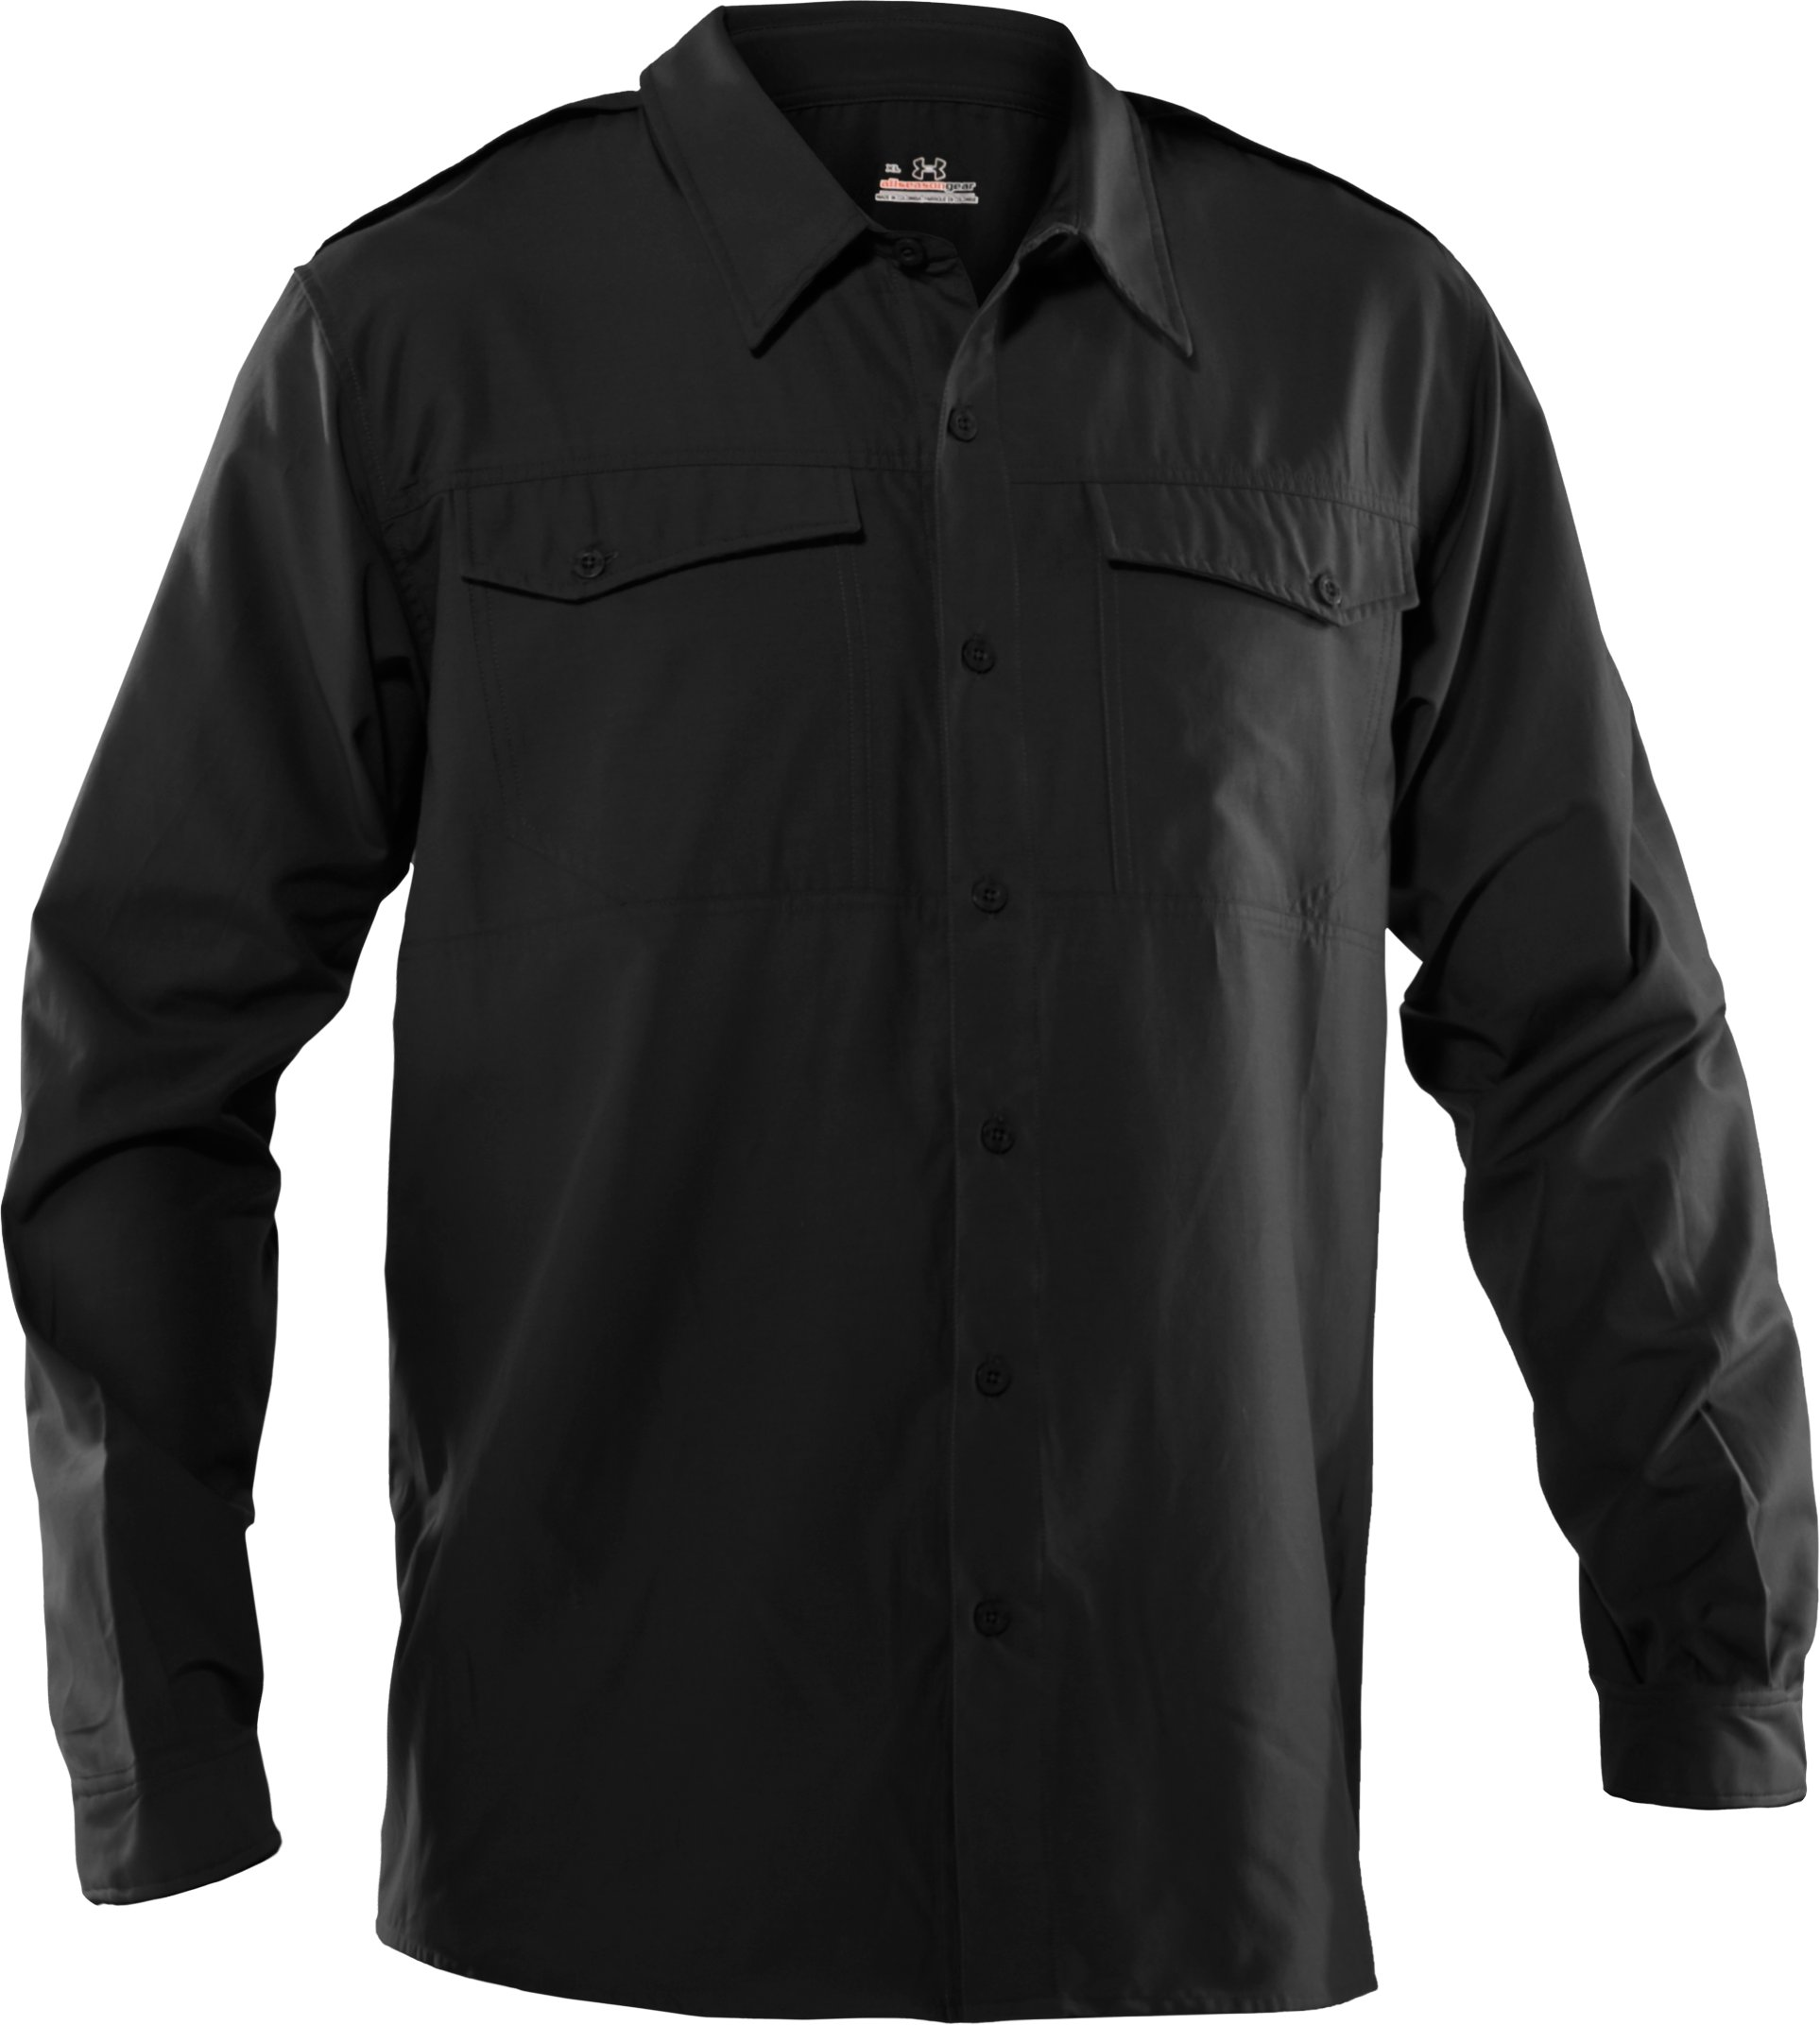 Men's Counter Long Sleeve Tactical Shirt, Black